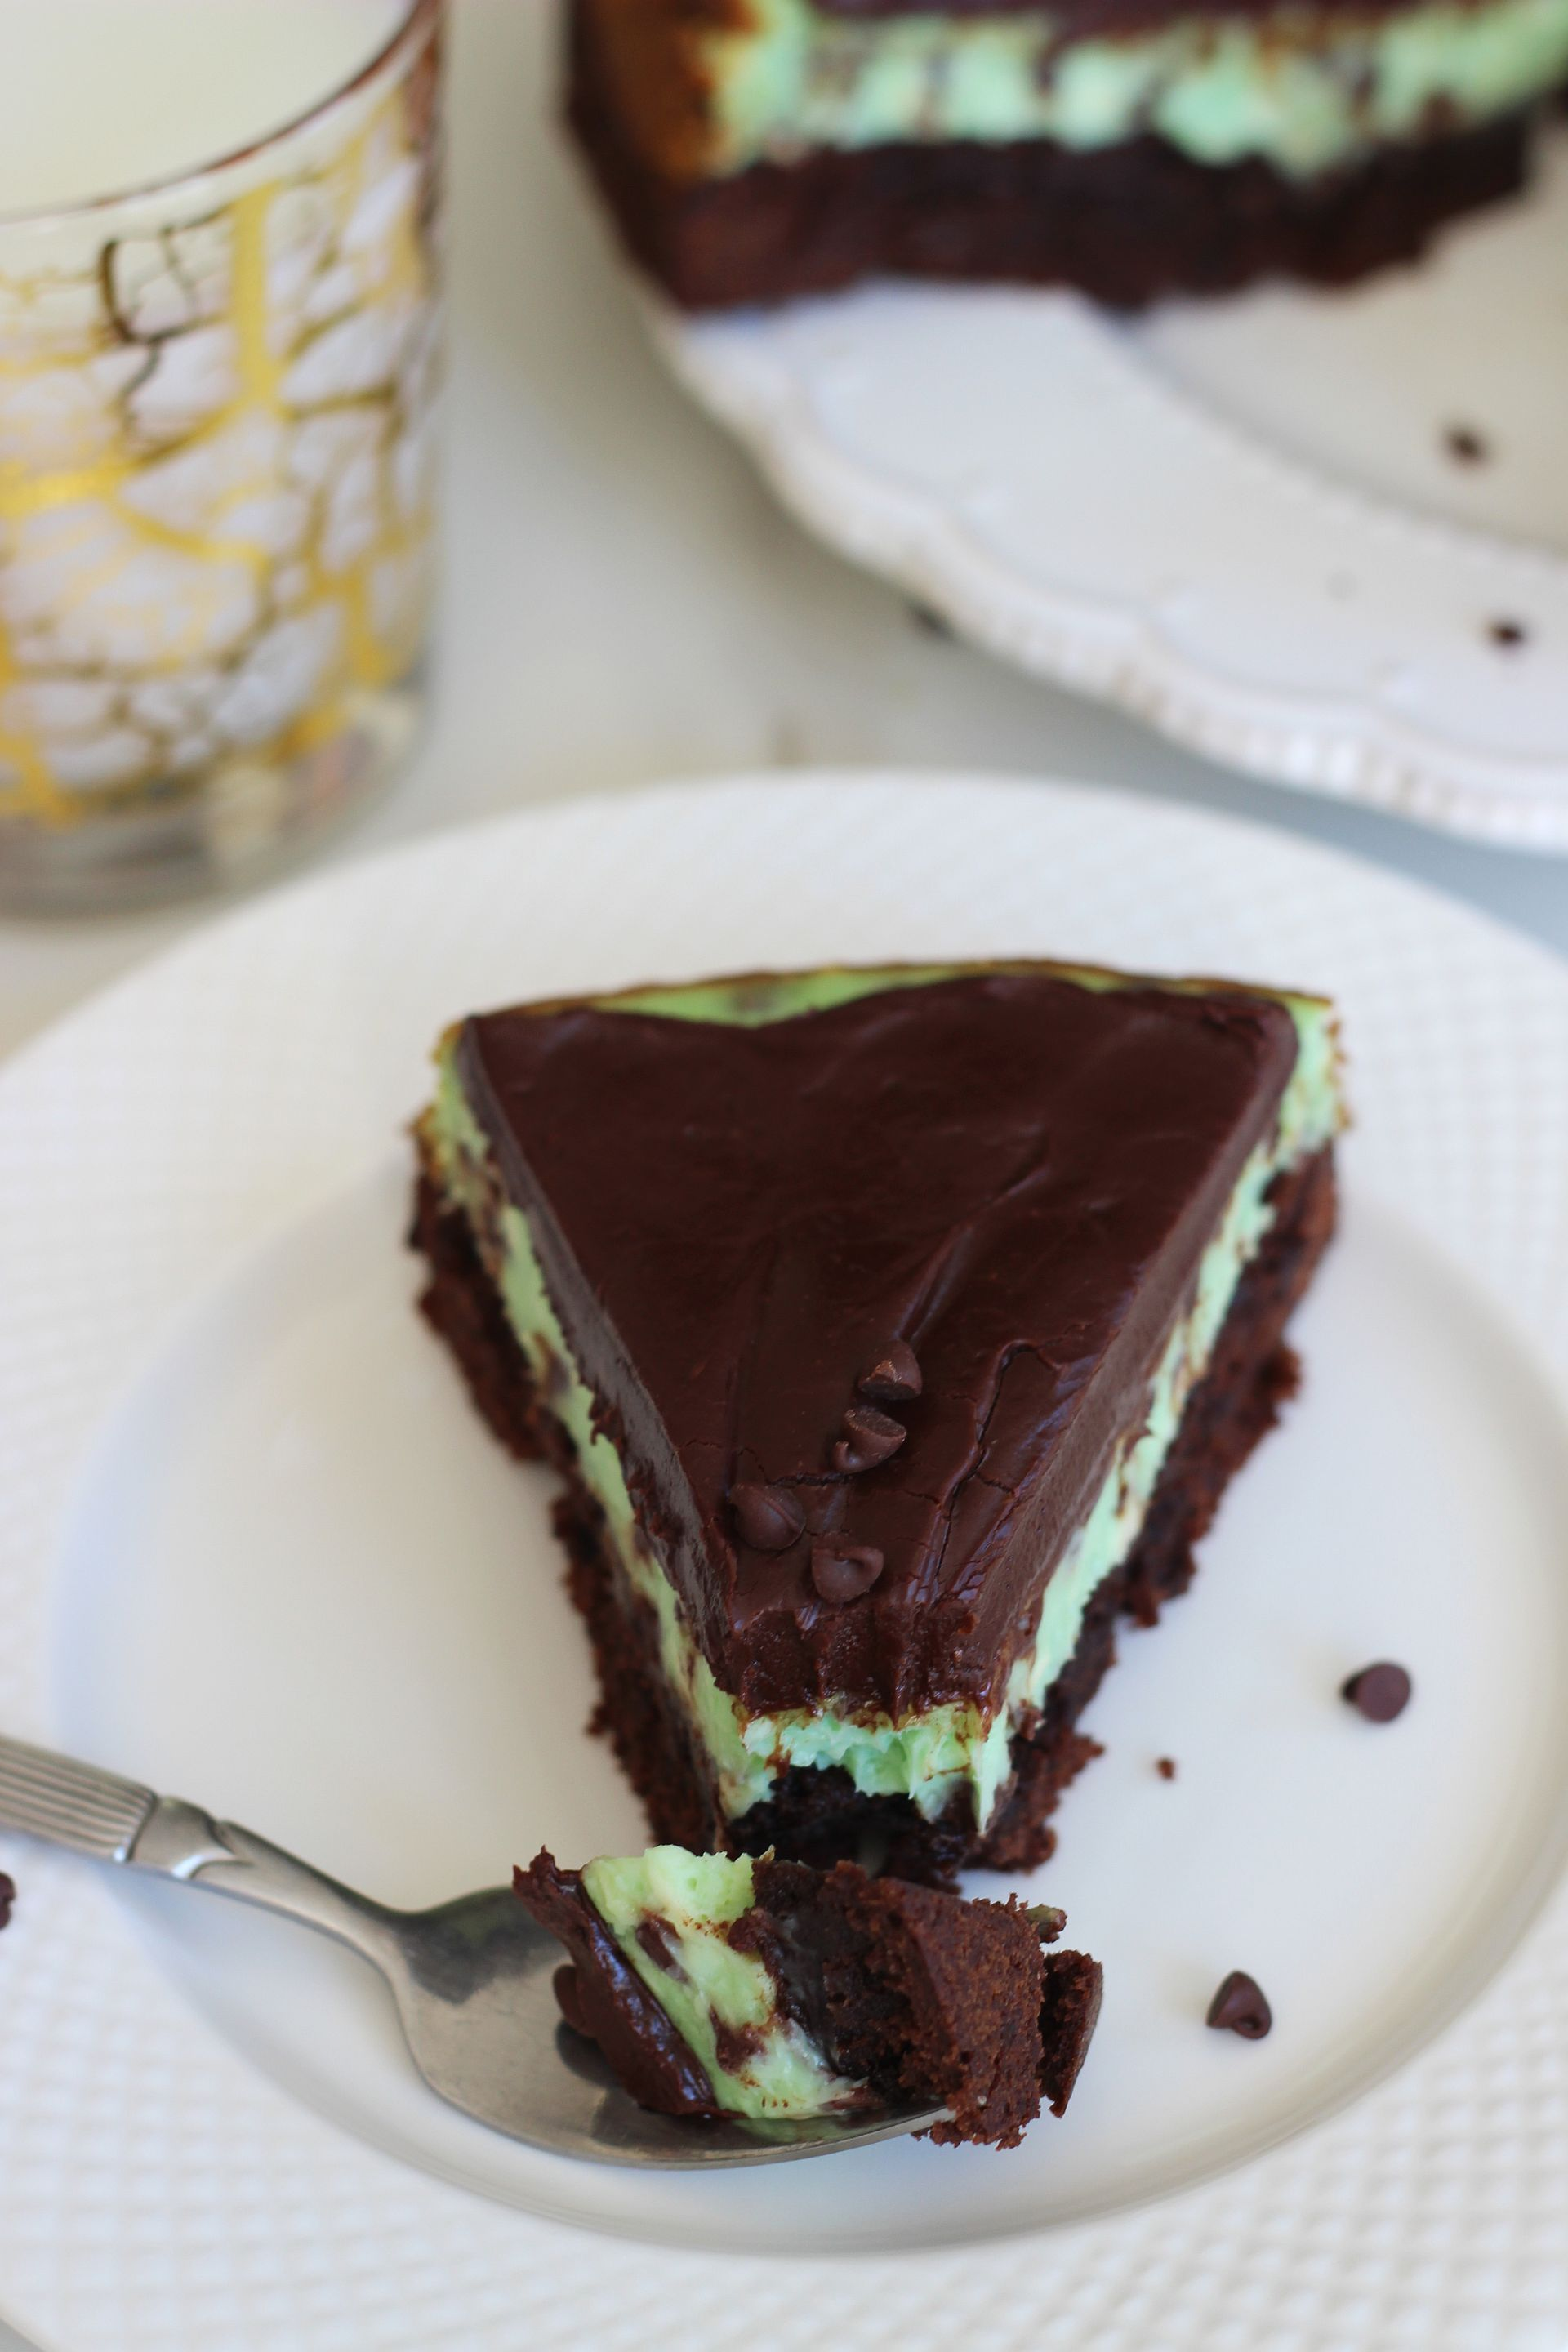 Mint Chocolate Chip Brownie Cheesecake with Chocolate Ganache